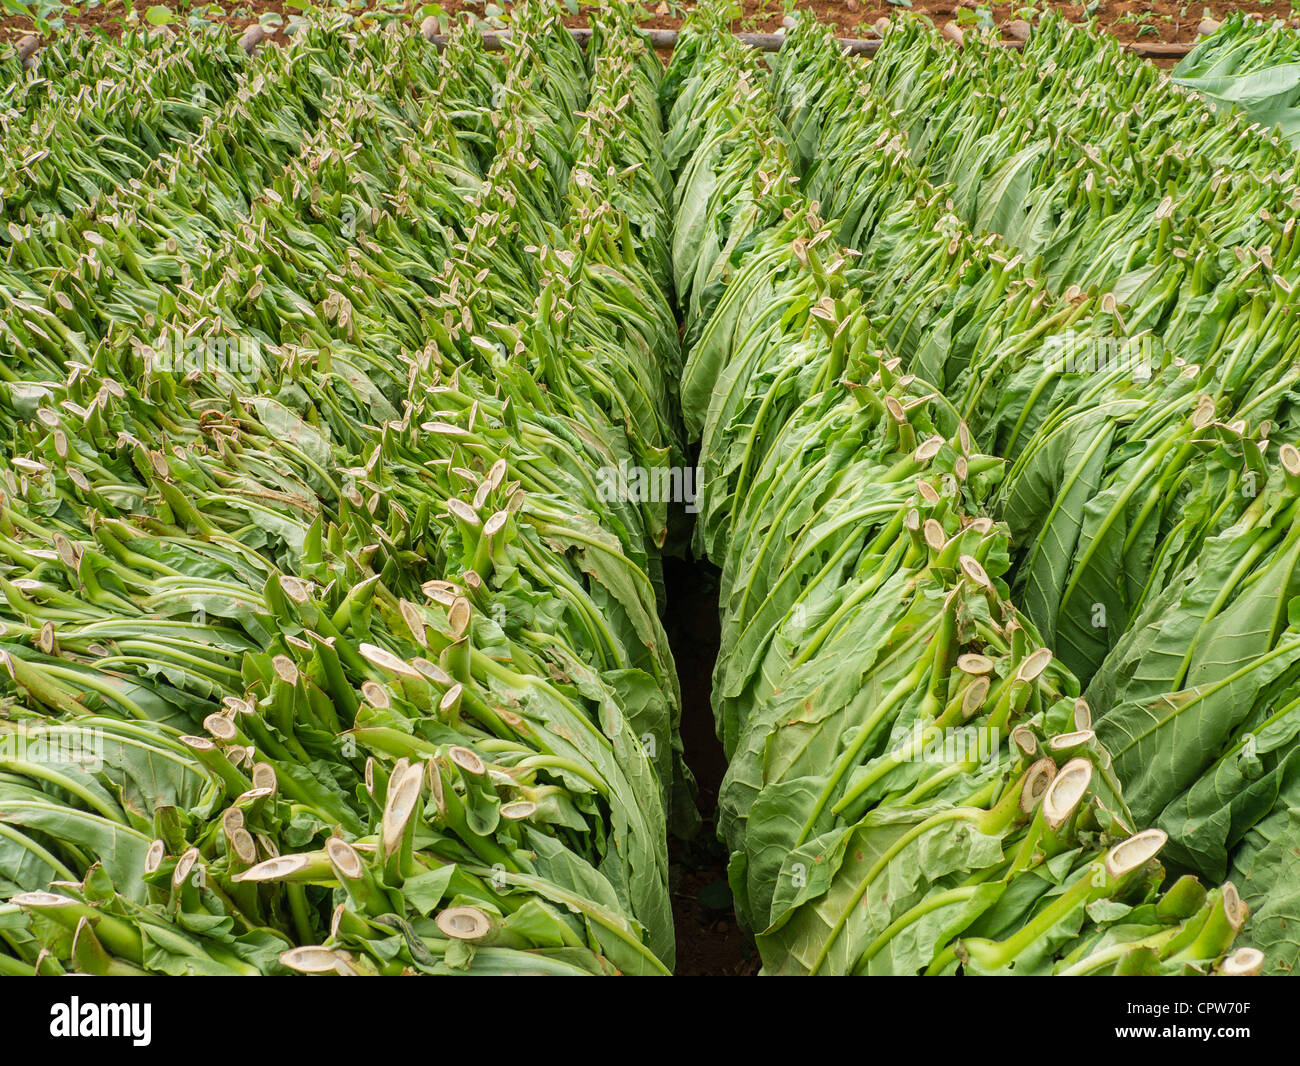 Rows of freshly cut green tobacco leaves are lined up drying outside in a field near Viñales, Cuba - Stock Image